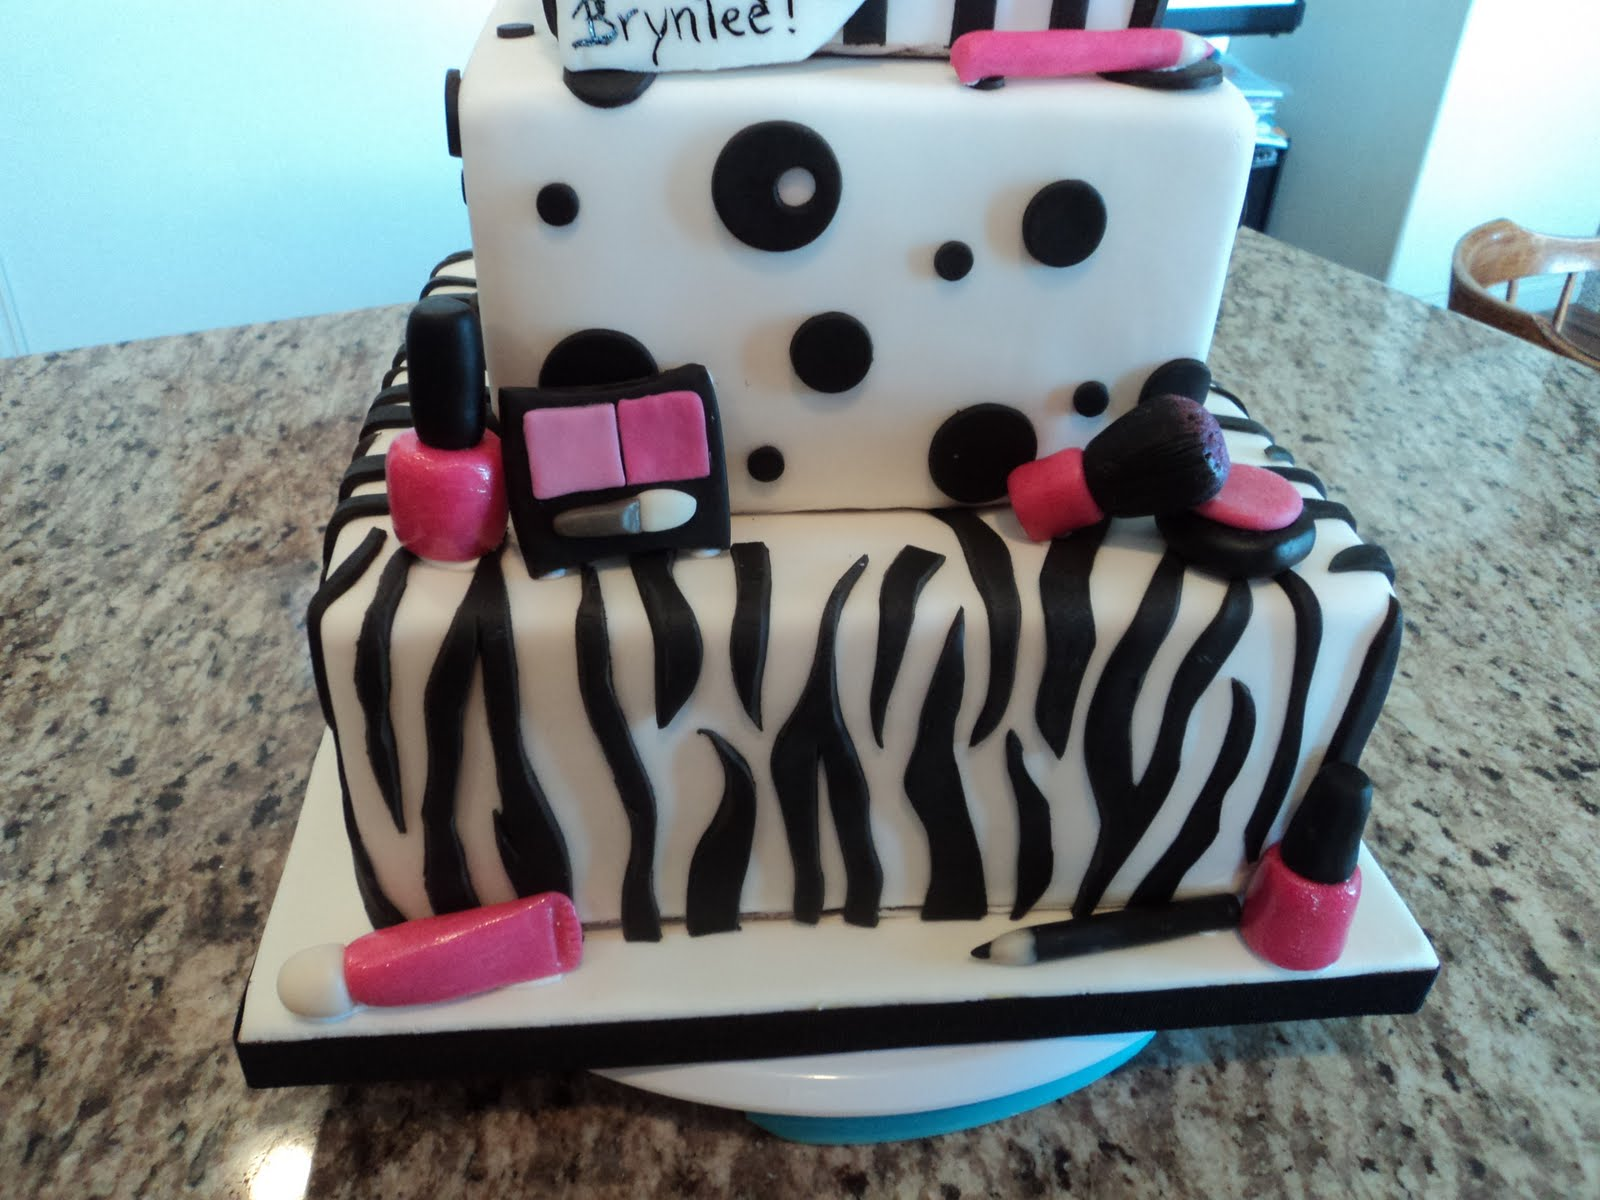 Delectable Cakes Black And White Make Up Cake